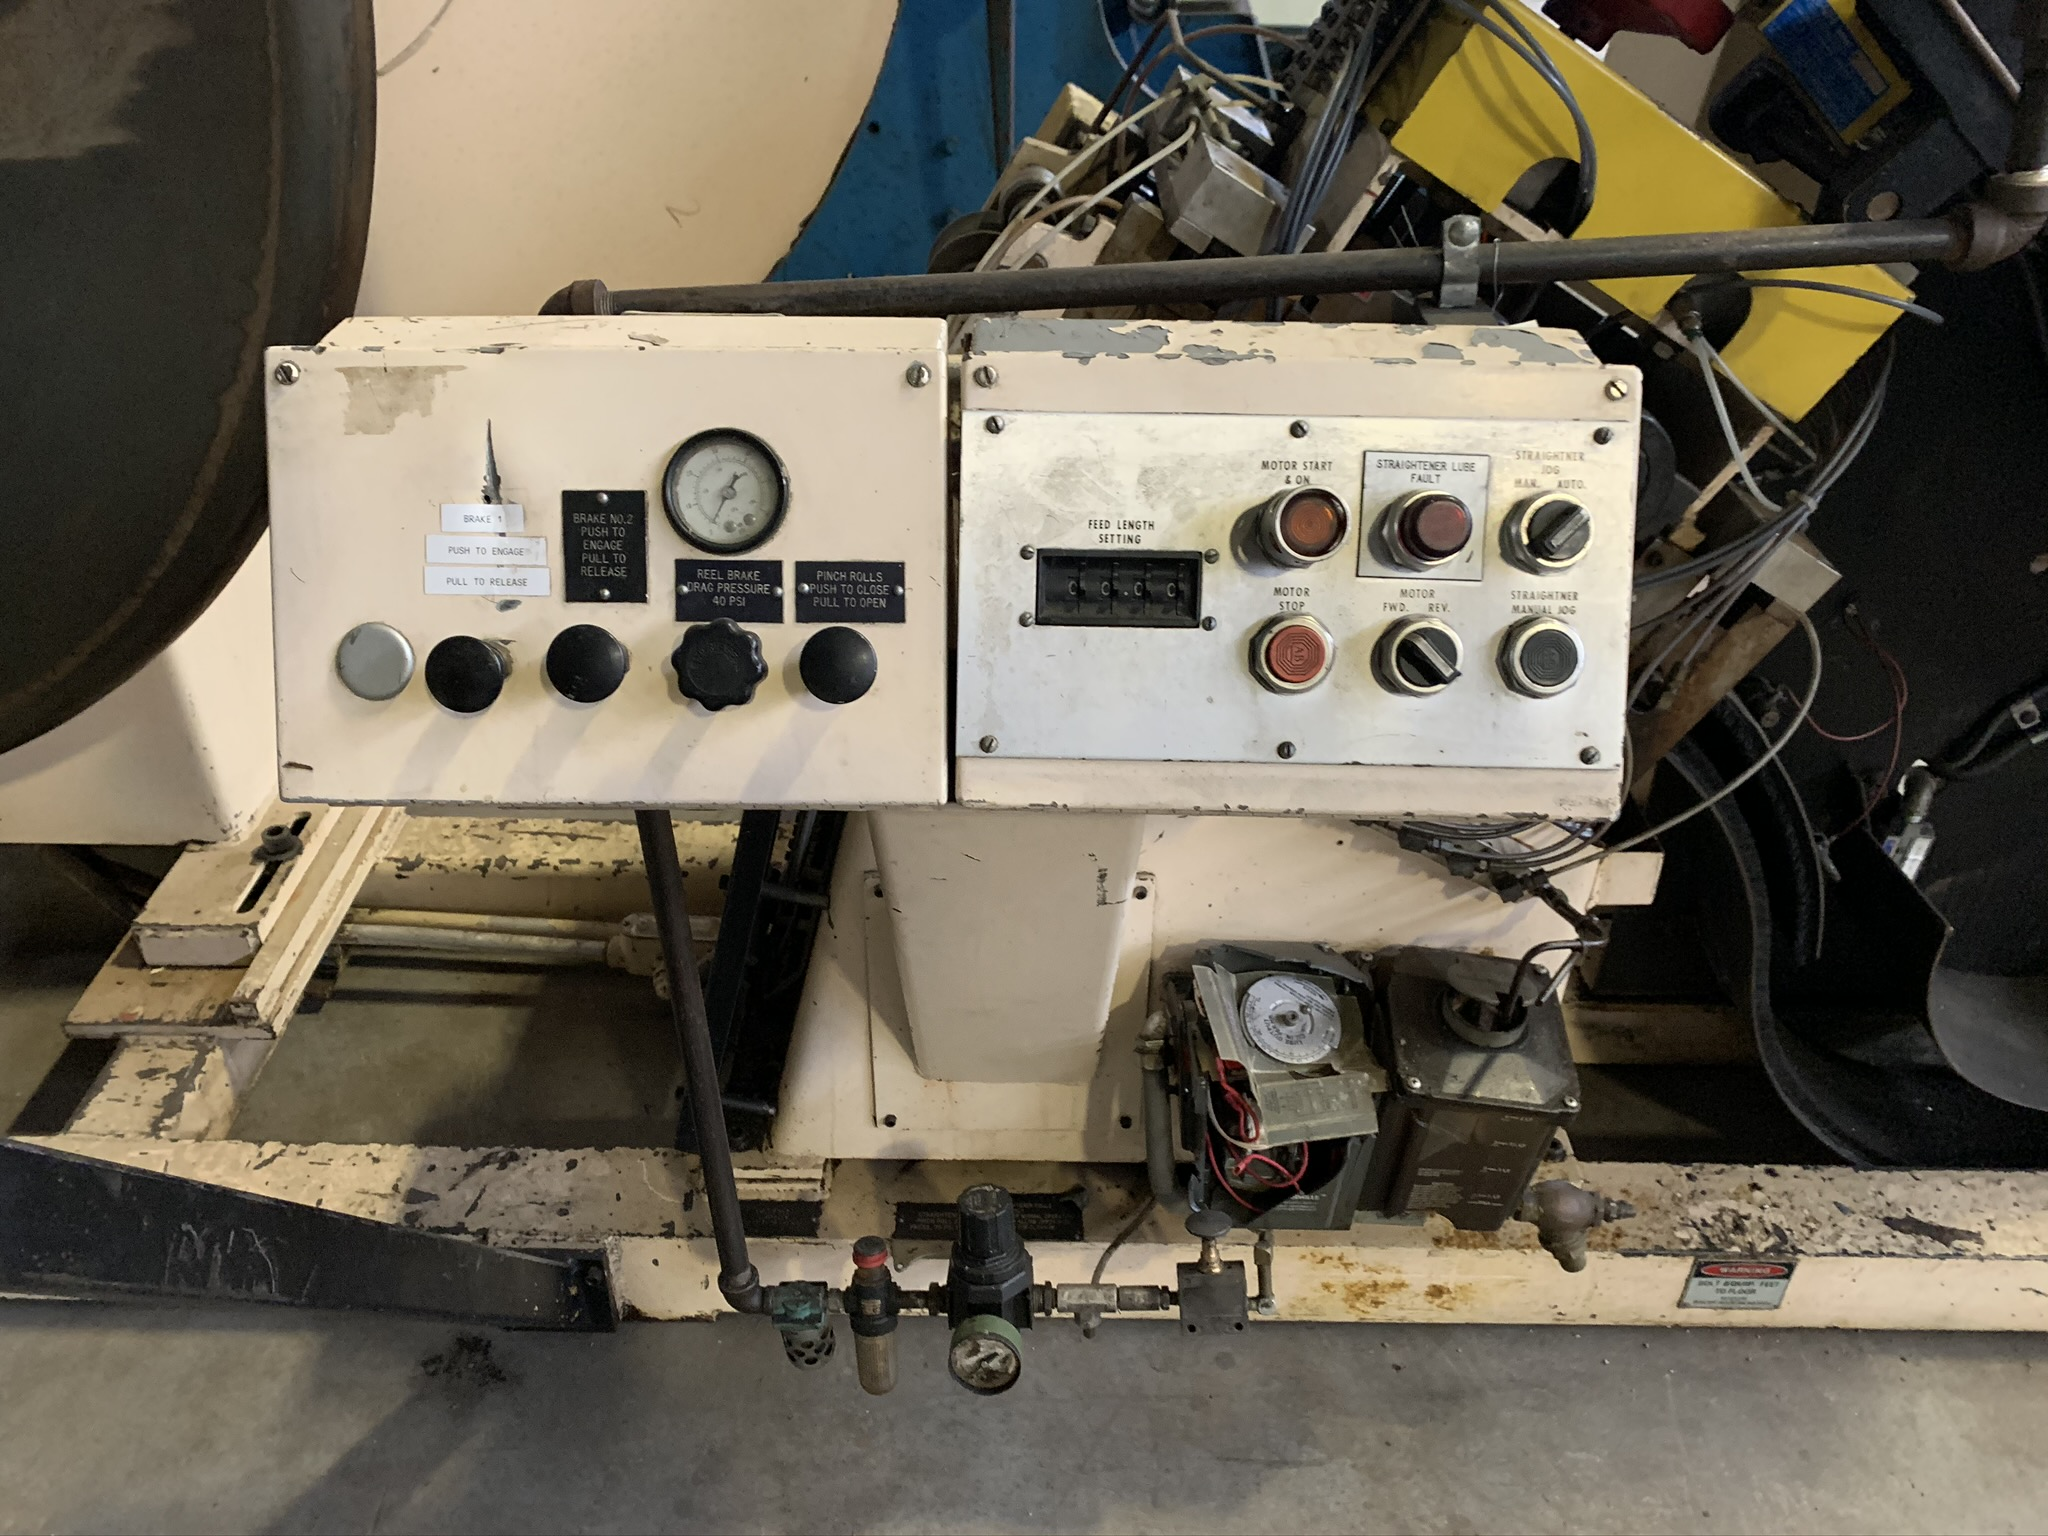 "6"" X 3,000 LB. MINSTER POWERED STRAIGHTENER / UNCOILER COMBINATION; S/N 13-11111, COMMON BASE, - Image 3 of 11"